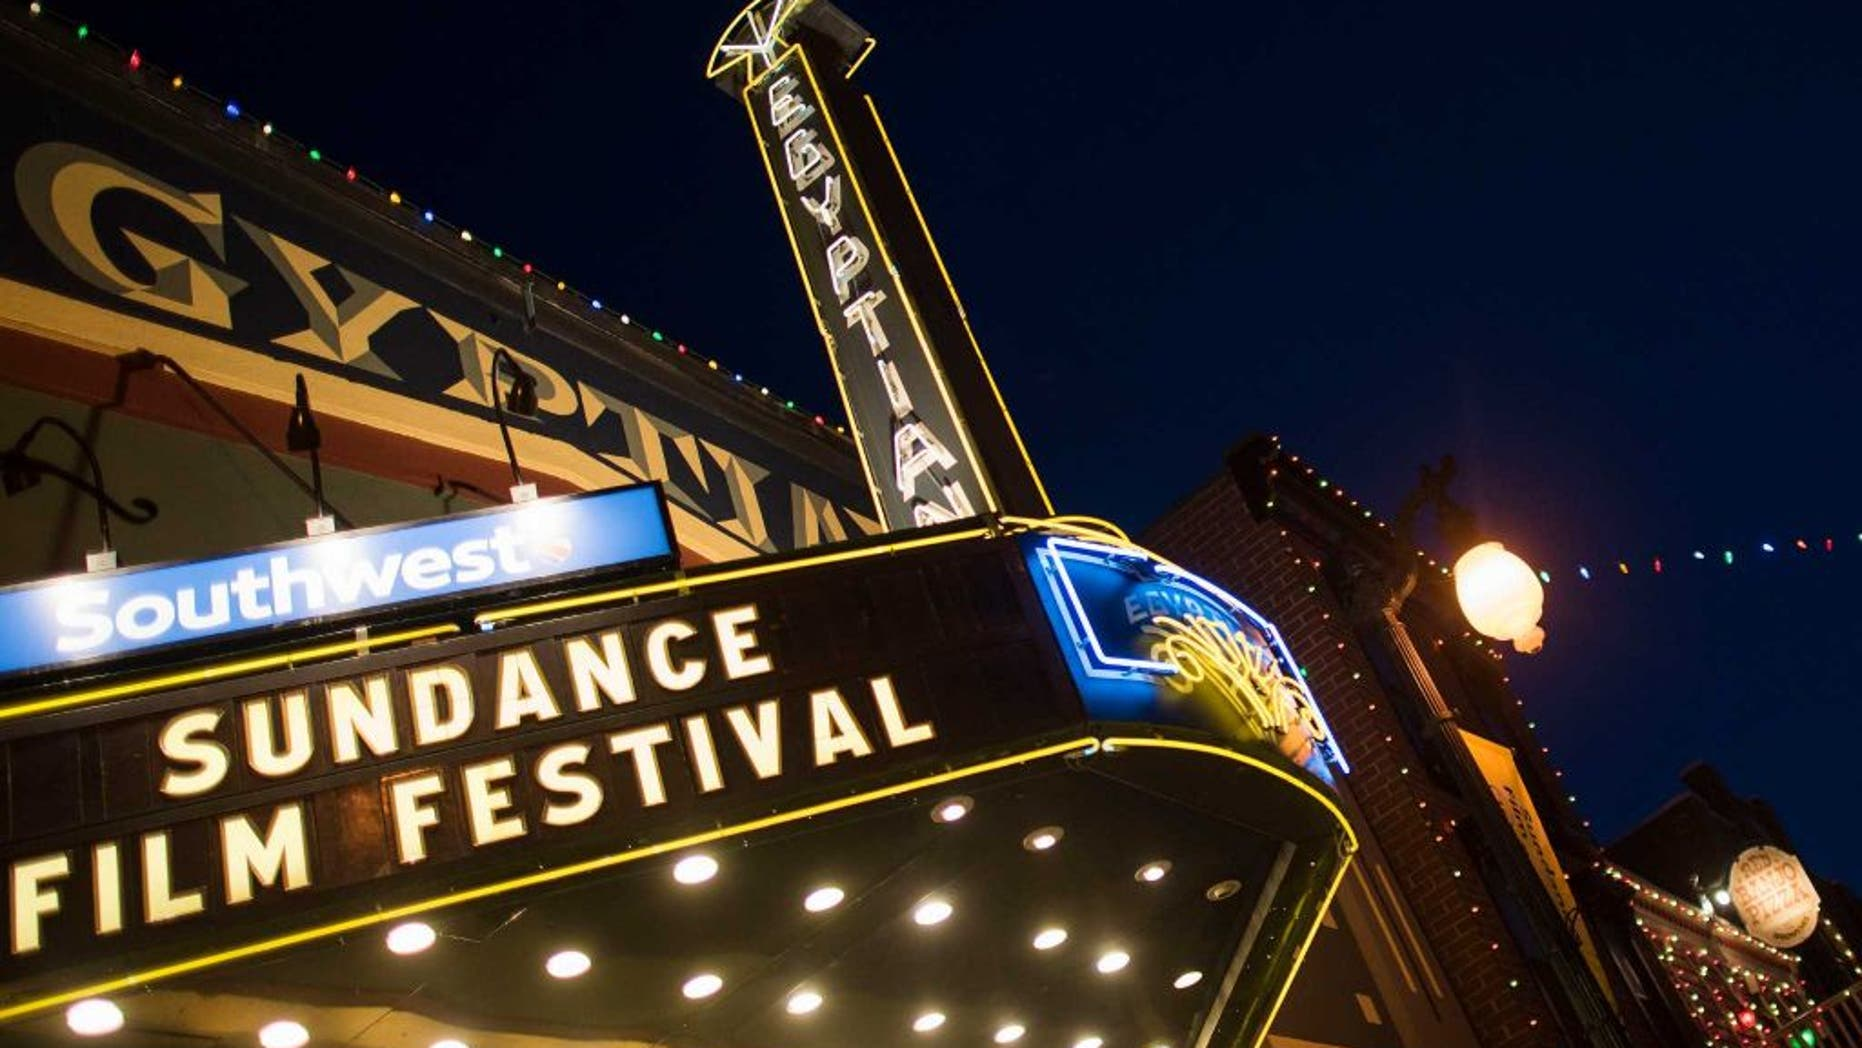 Every January, the streets of the mountain town of Park City, Utah, light up as the Robert Redford-founded Sundance Film Festival pulls in big names to introduce future Oscar winners and eye-opening documentaries.